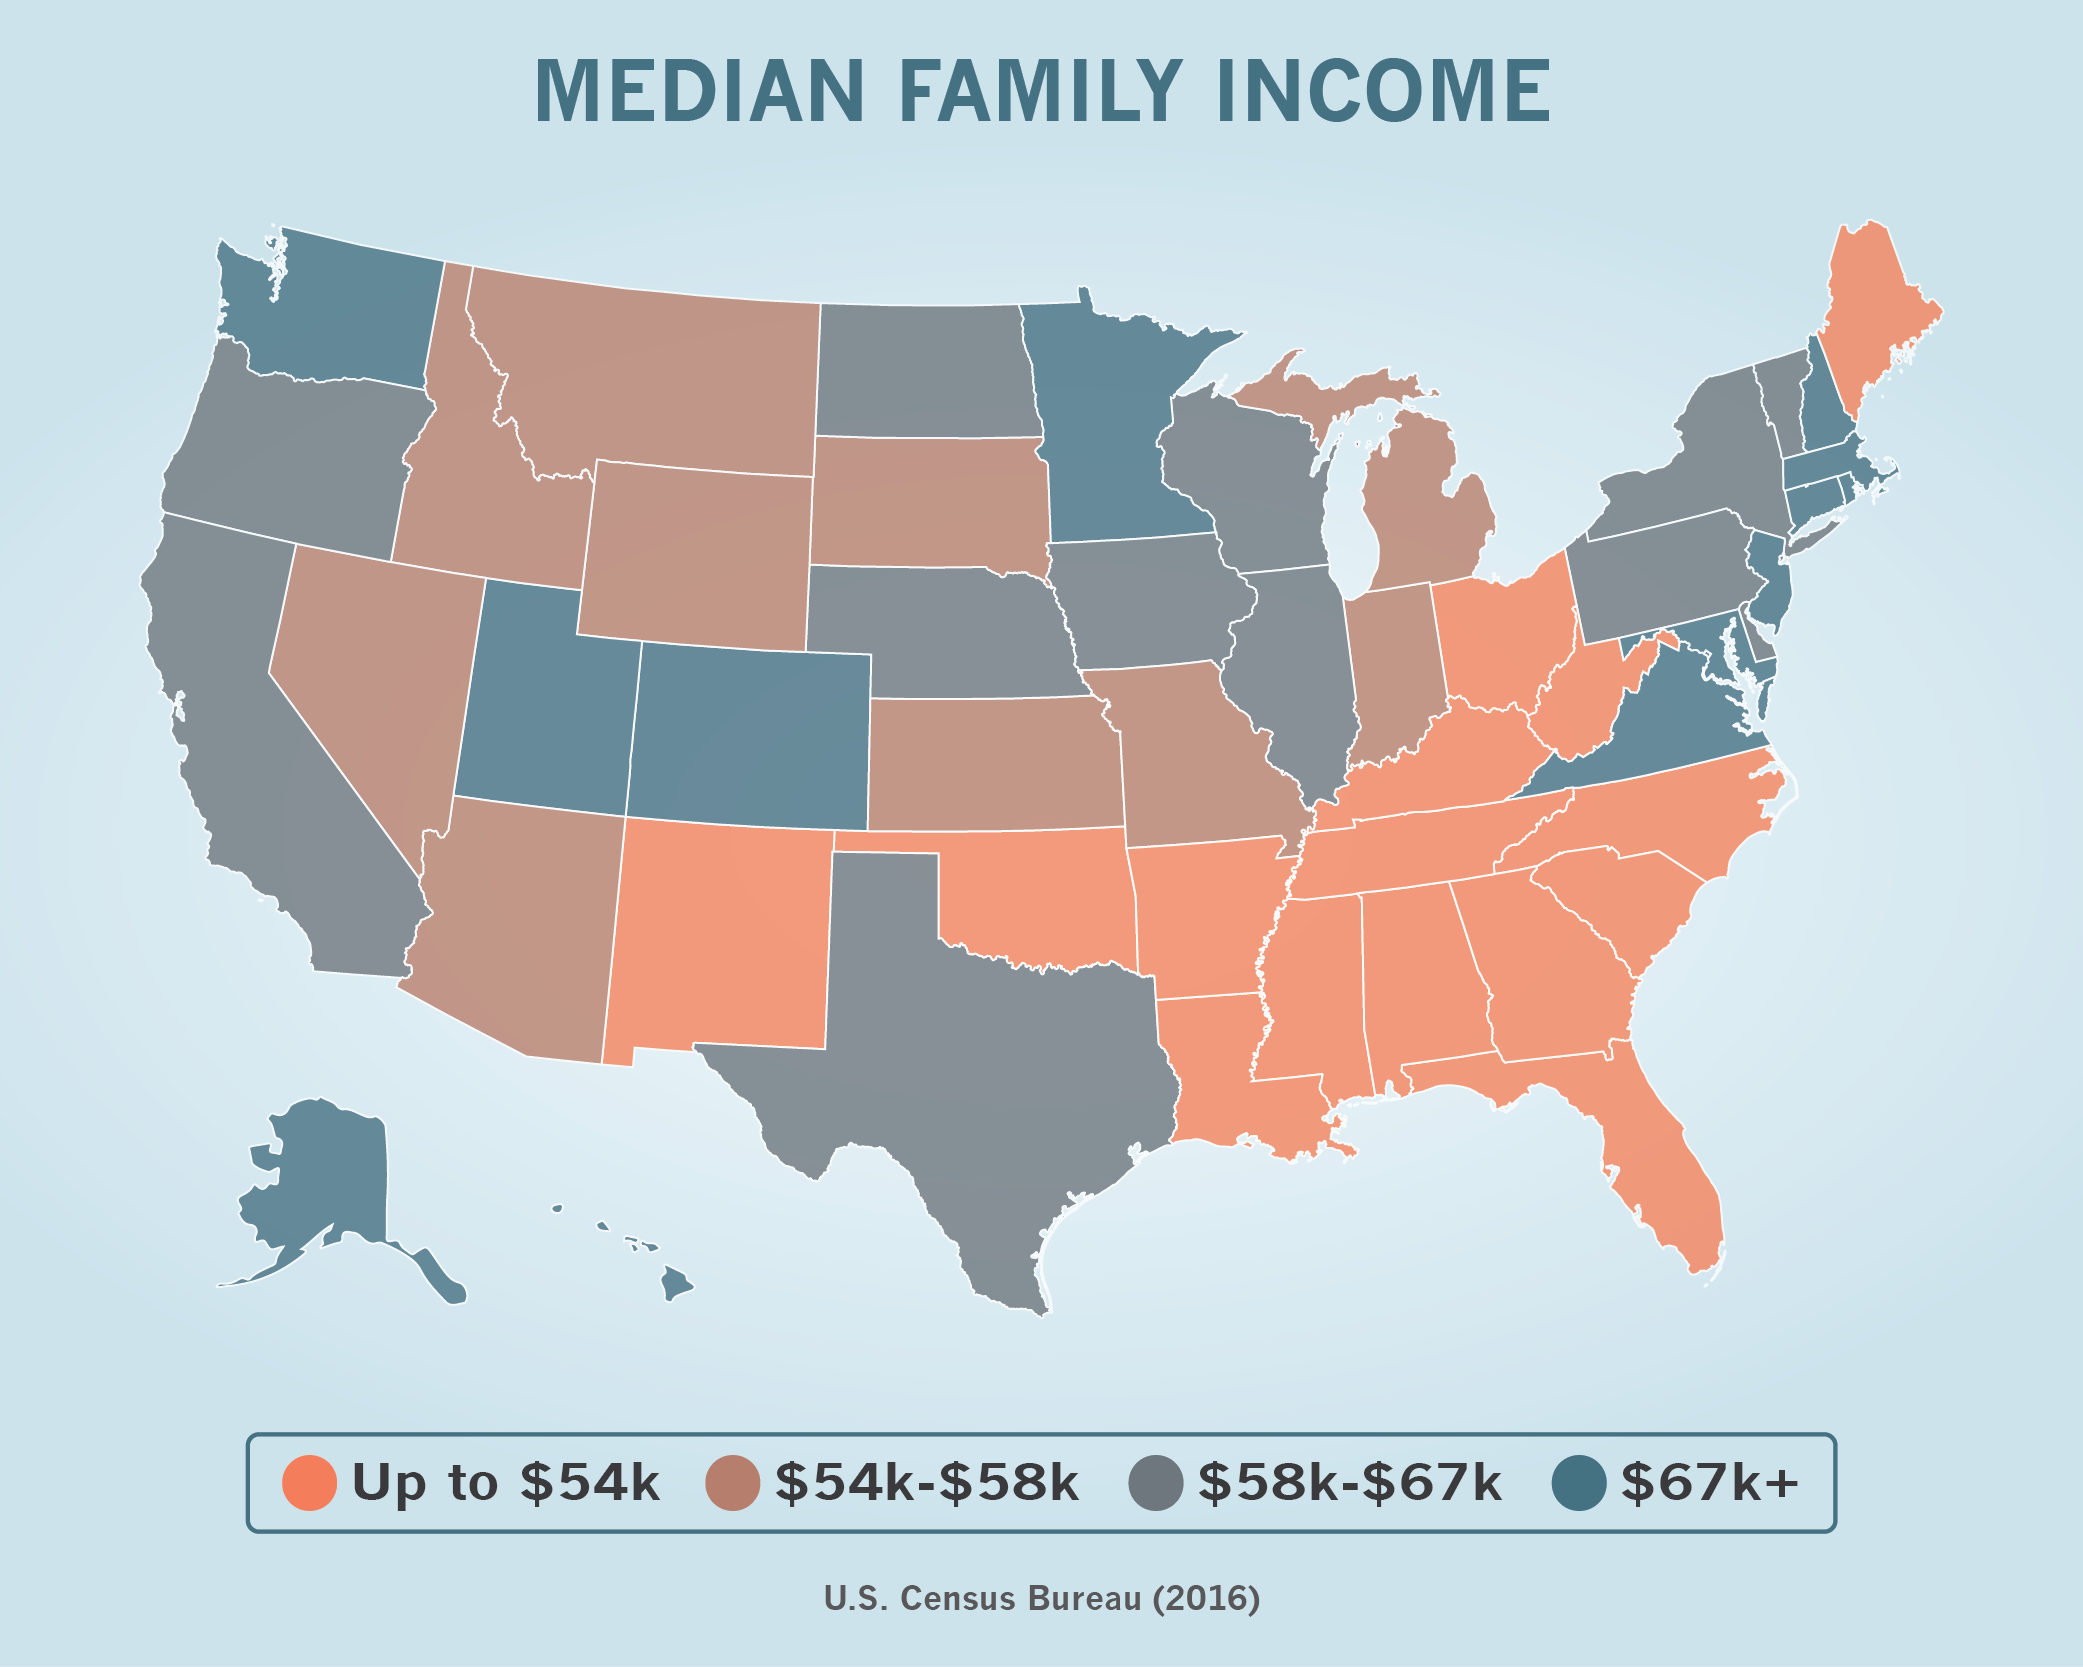 Median Family Income